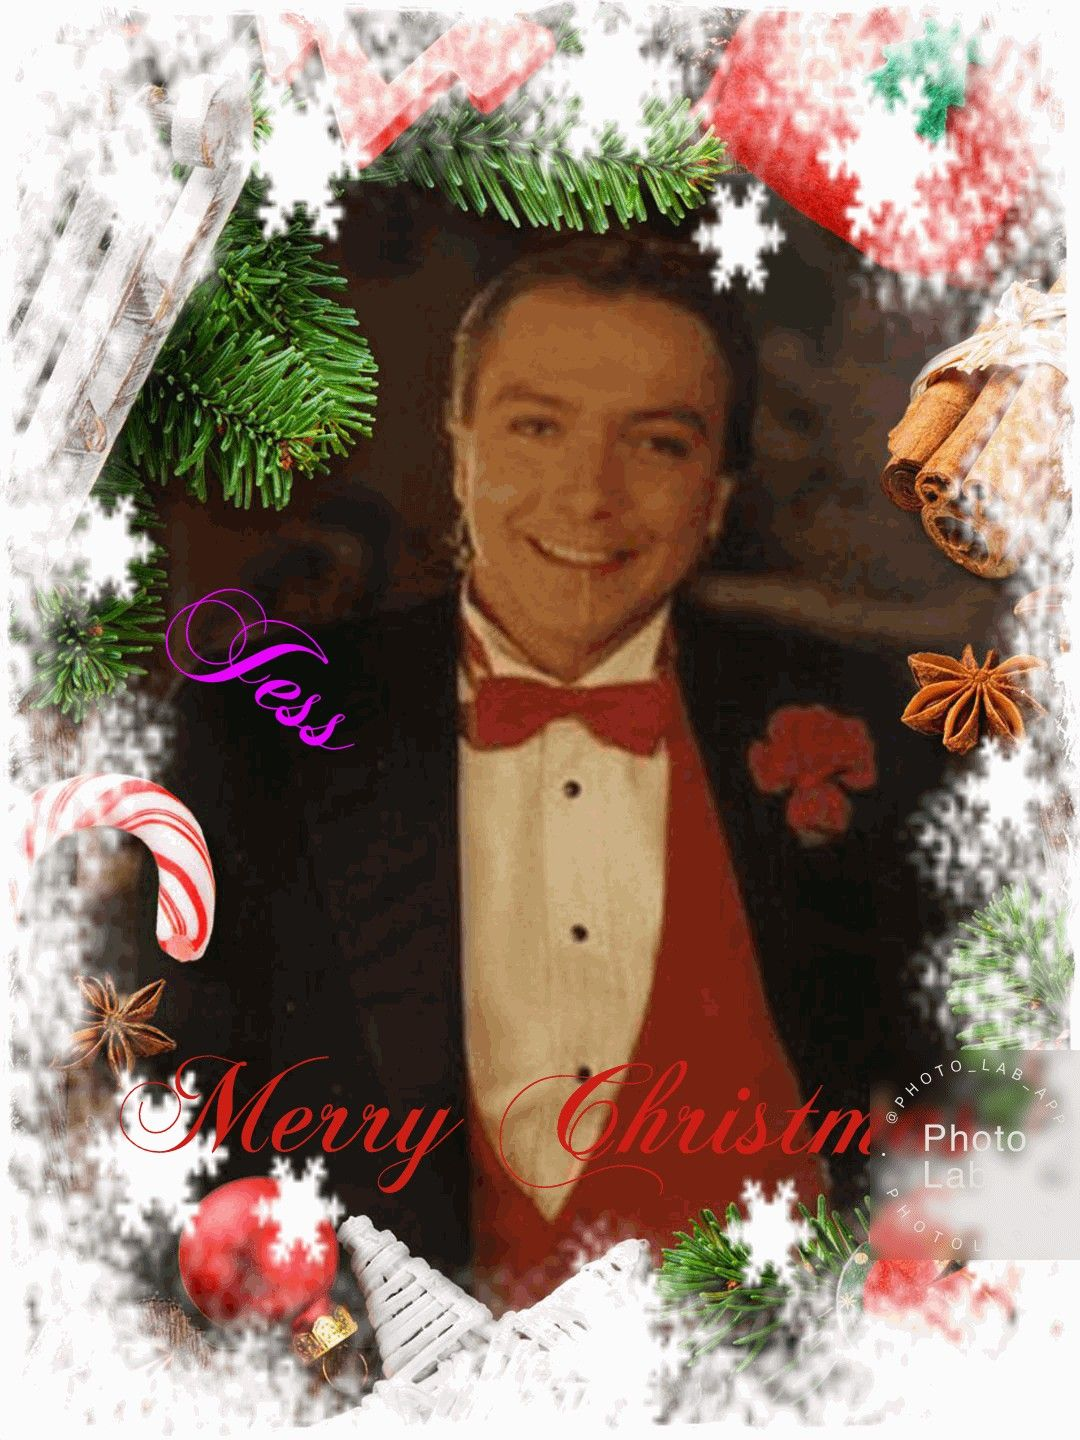 Pin by Jessica on David Cassidy Pics Christmas ornaments